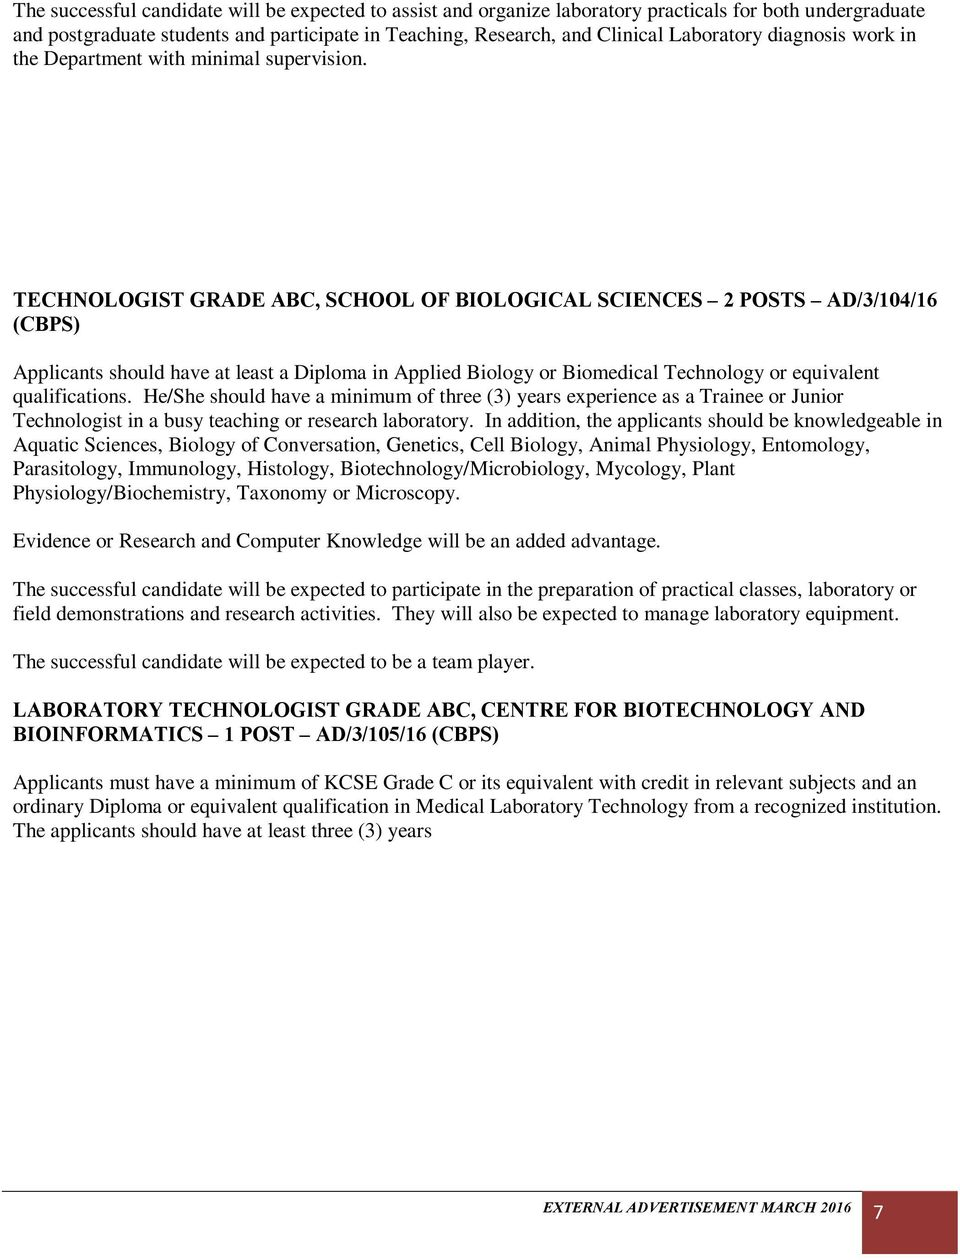 TECHNOLOGIST GRADE ABC, SCHOOL OF BIOLOGICAL SCIENCES 2 POSTS AD/3/104/16 (CBPS) Applicants should have at least a Diploma in Applied Biology or Biomedical Technology or equivalent qualifications.